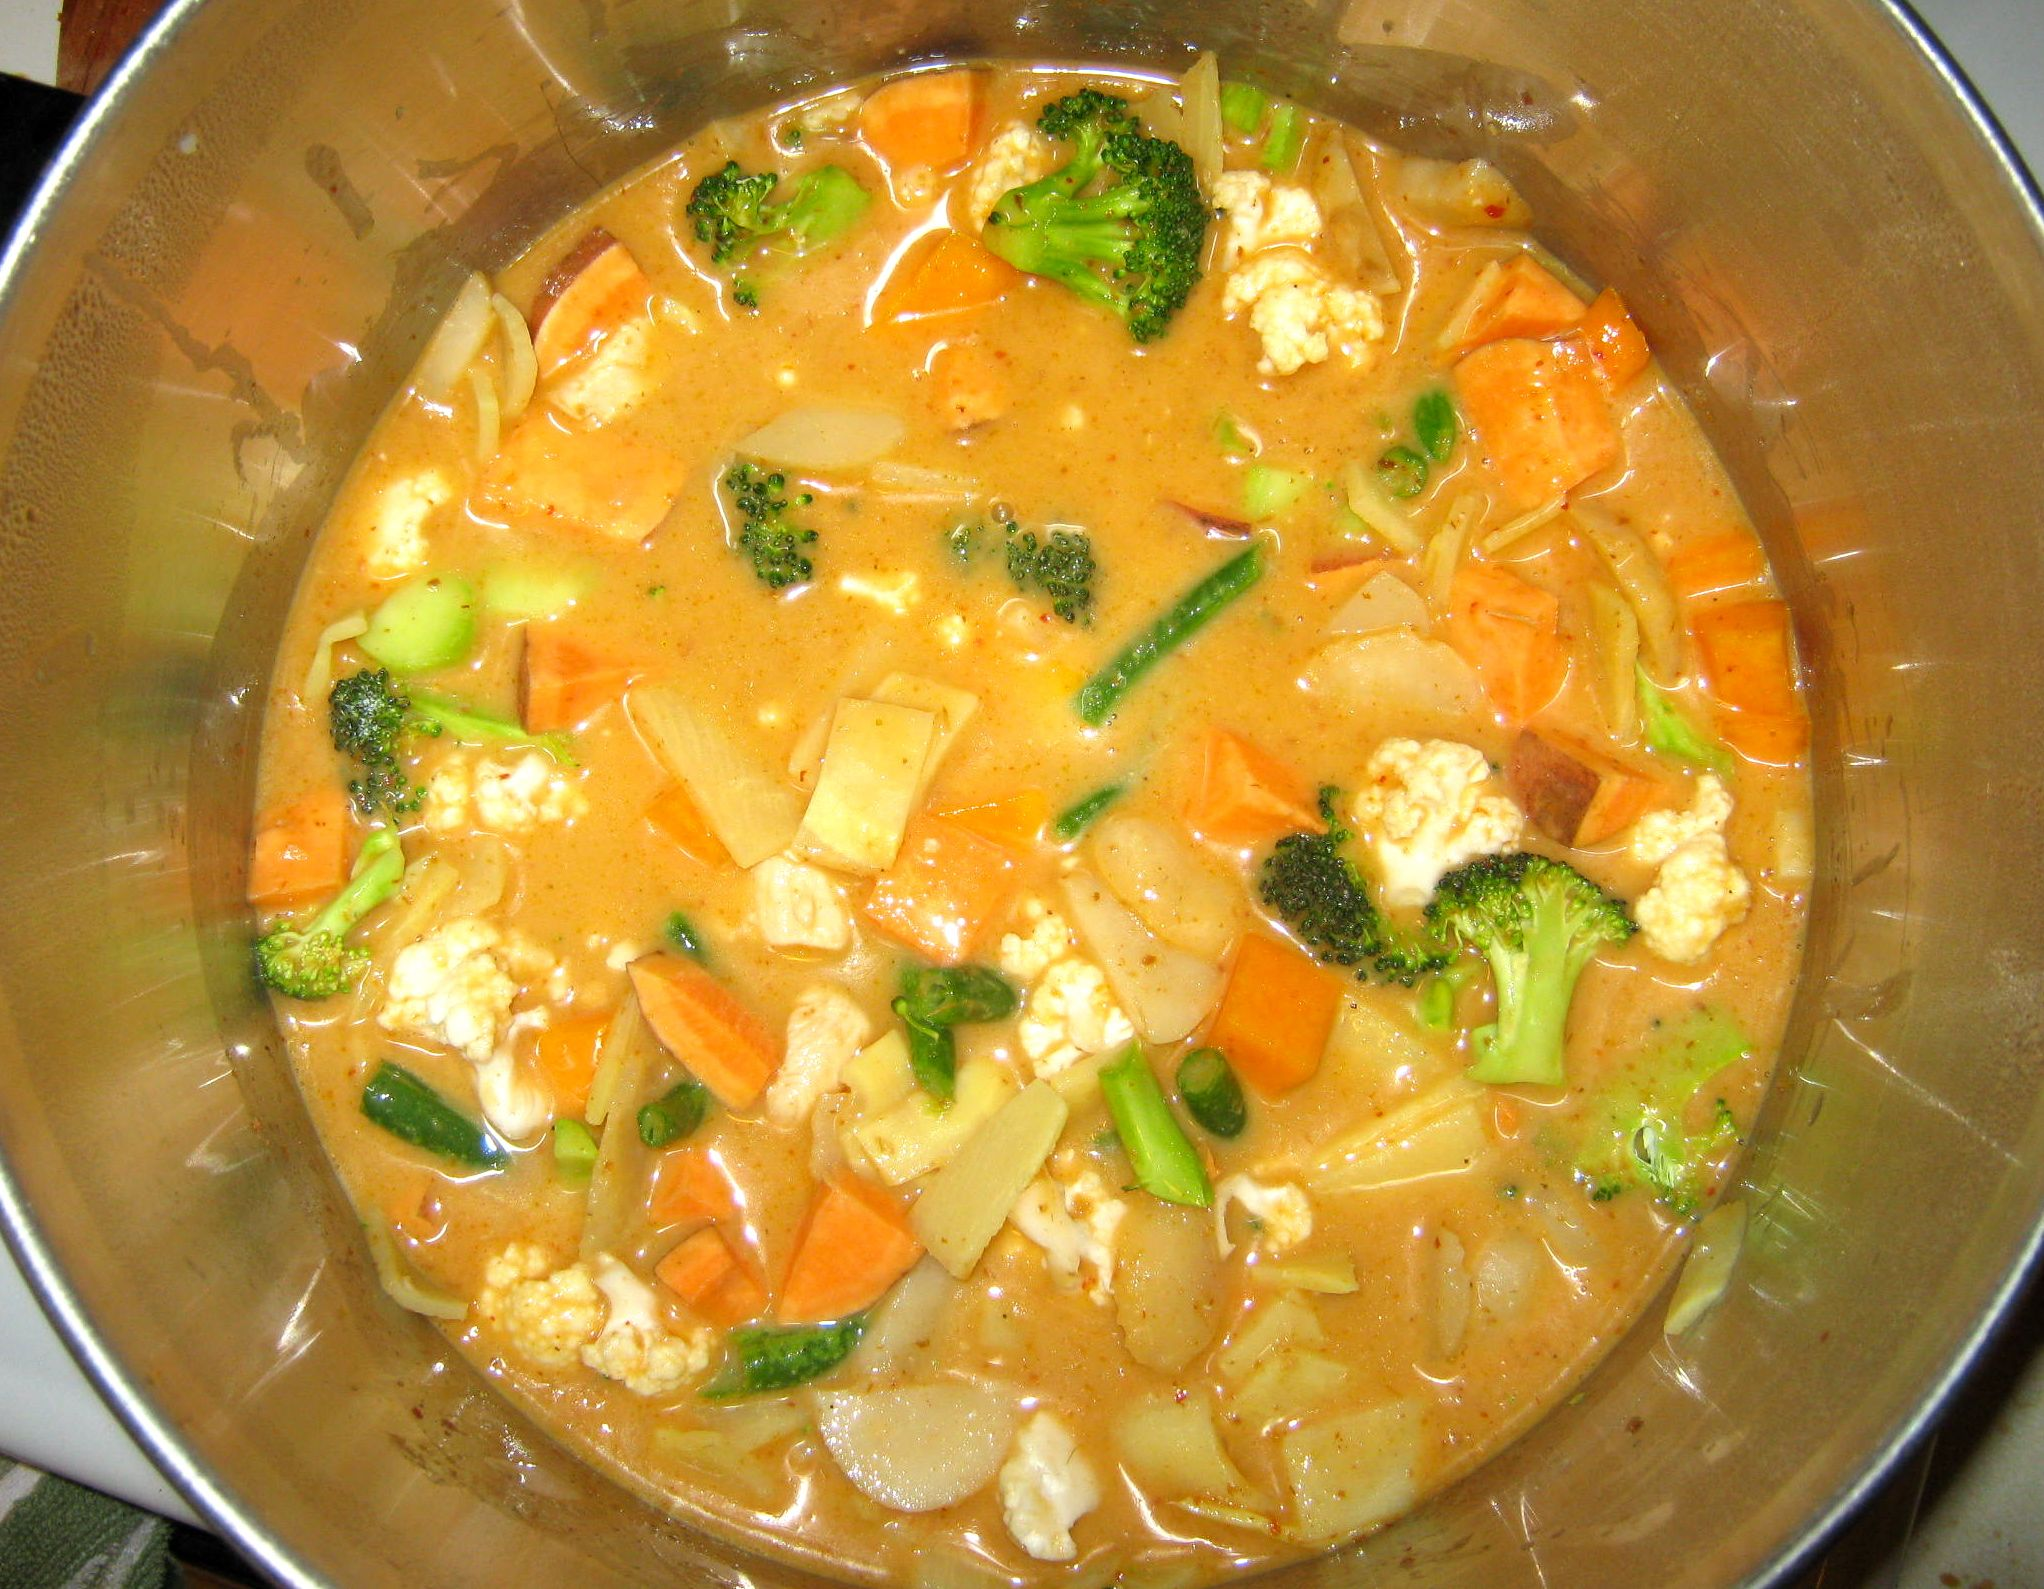 Appears to be an easy- Red Curry recipe